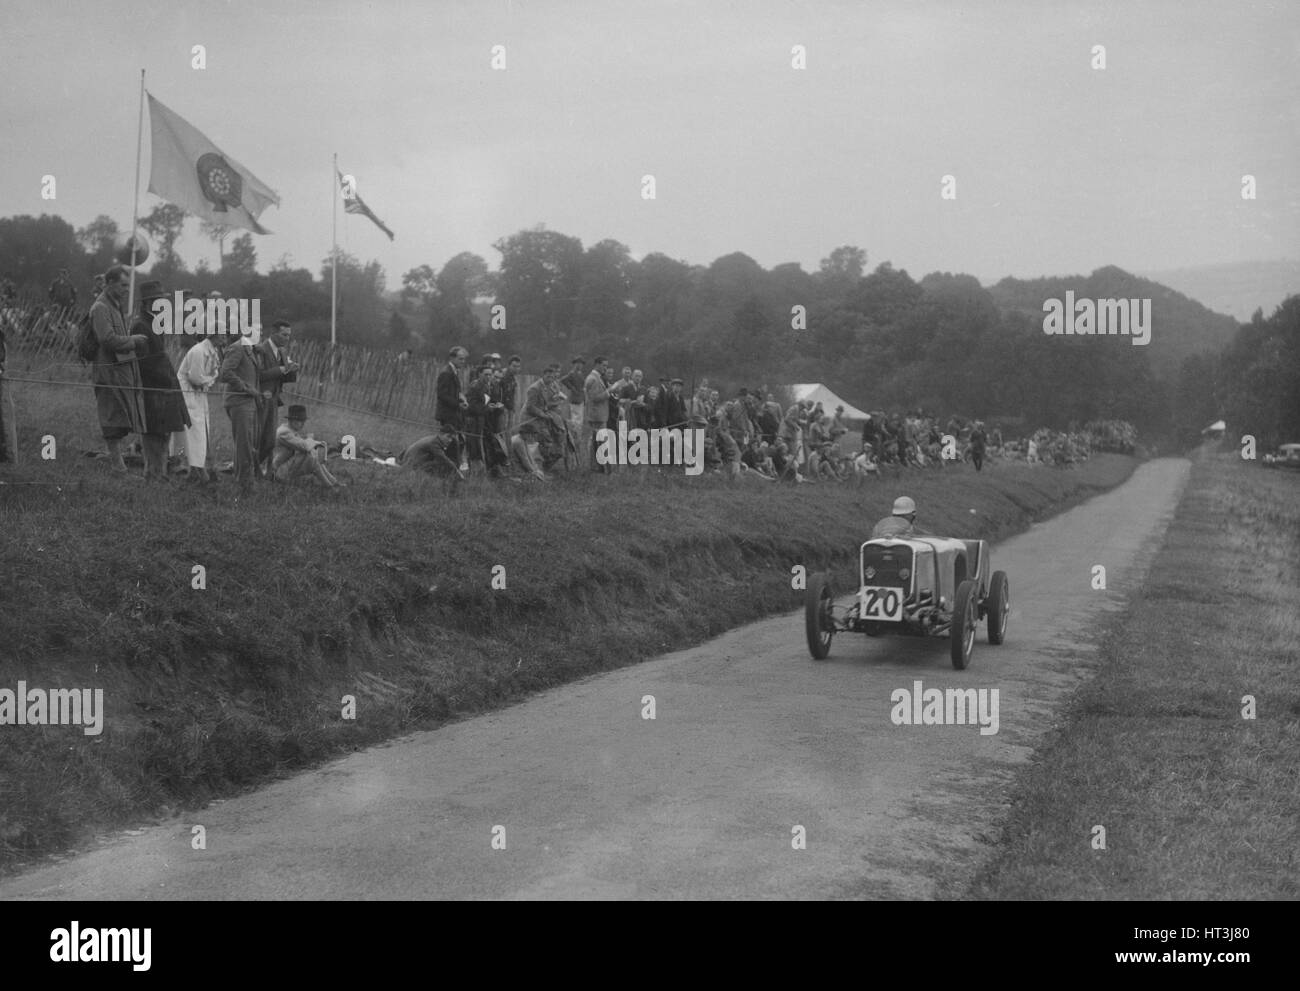 Singer competing in the Shelsley Walsh Hillclimb, Worcestershire, 1935. Artist: Bill Brunell. - Stock Image